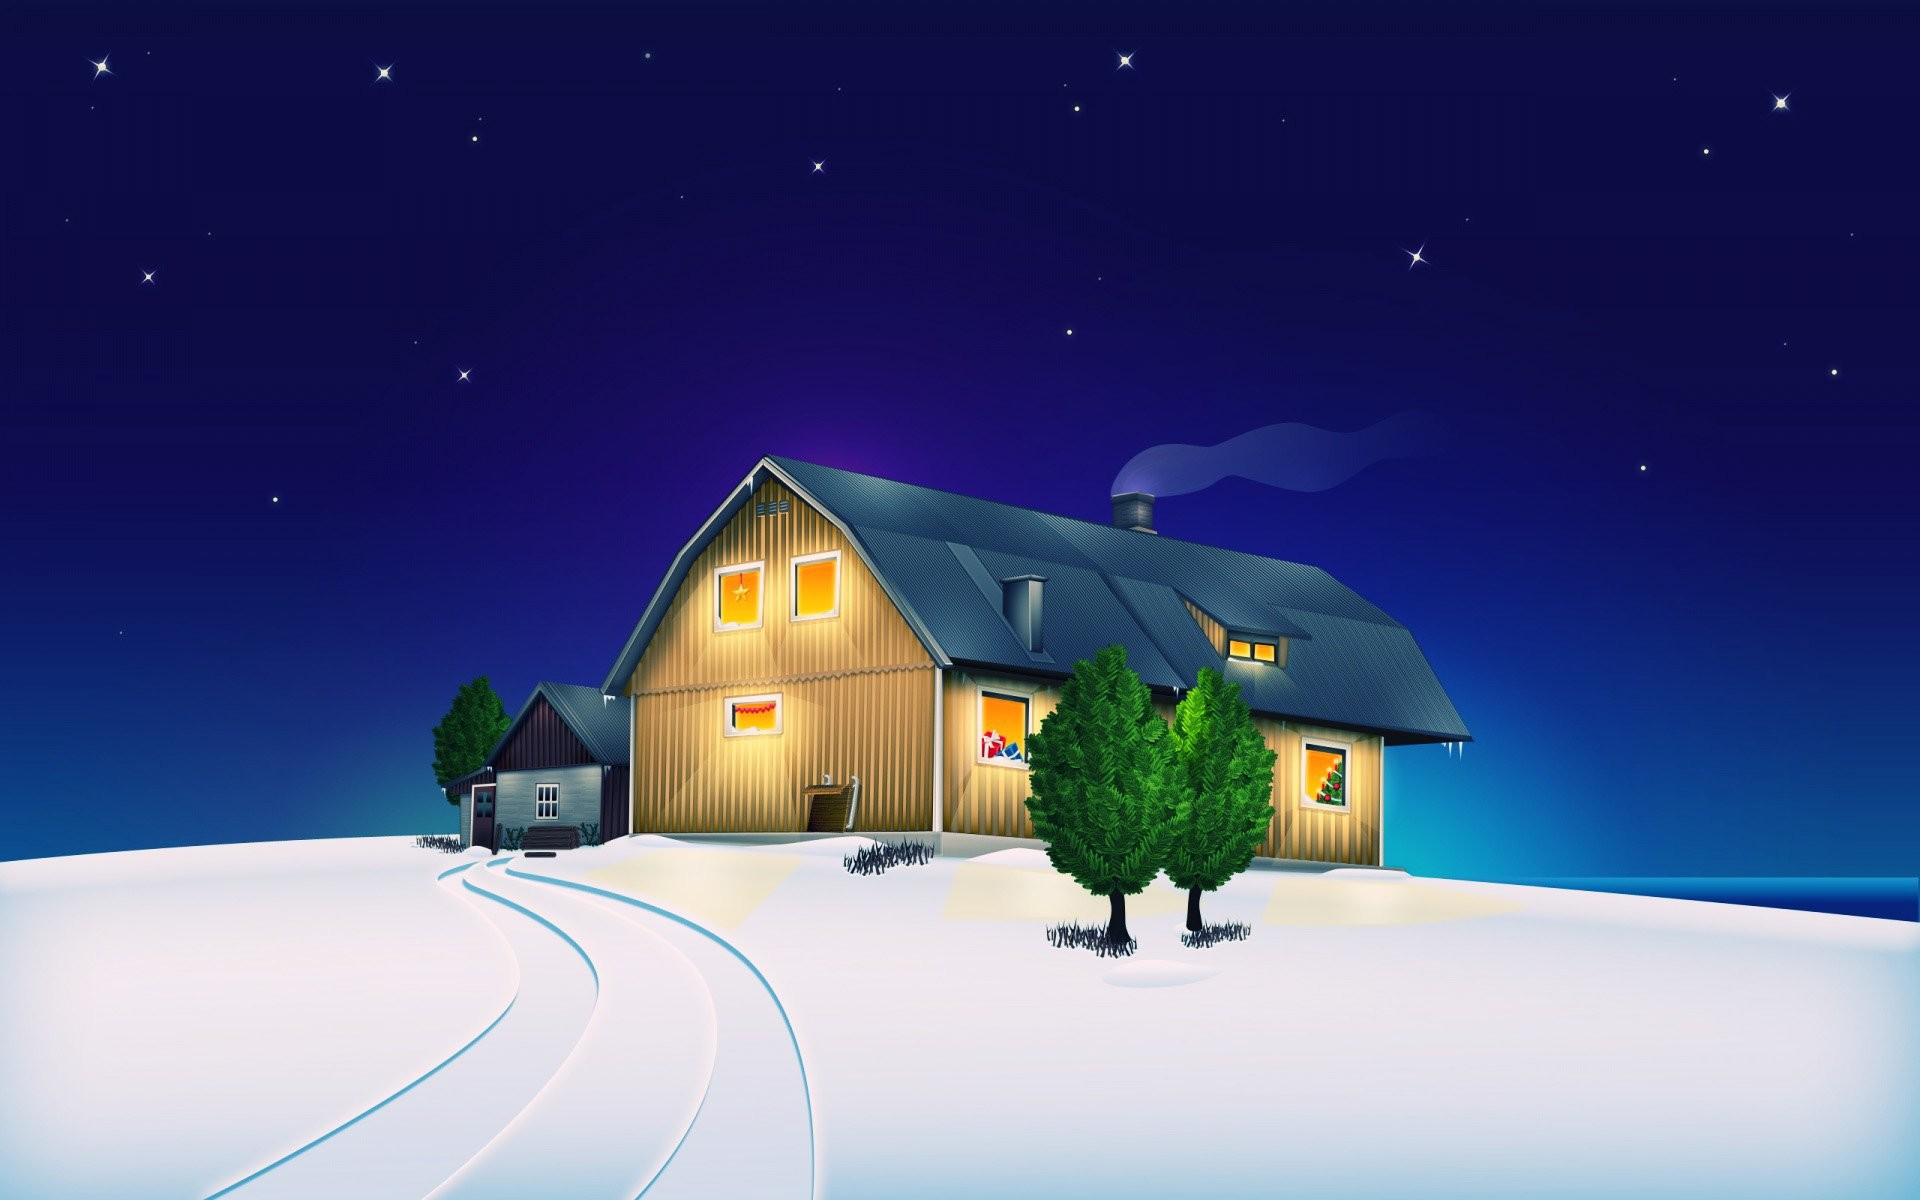 1920x1200 Animated Christmas House